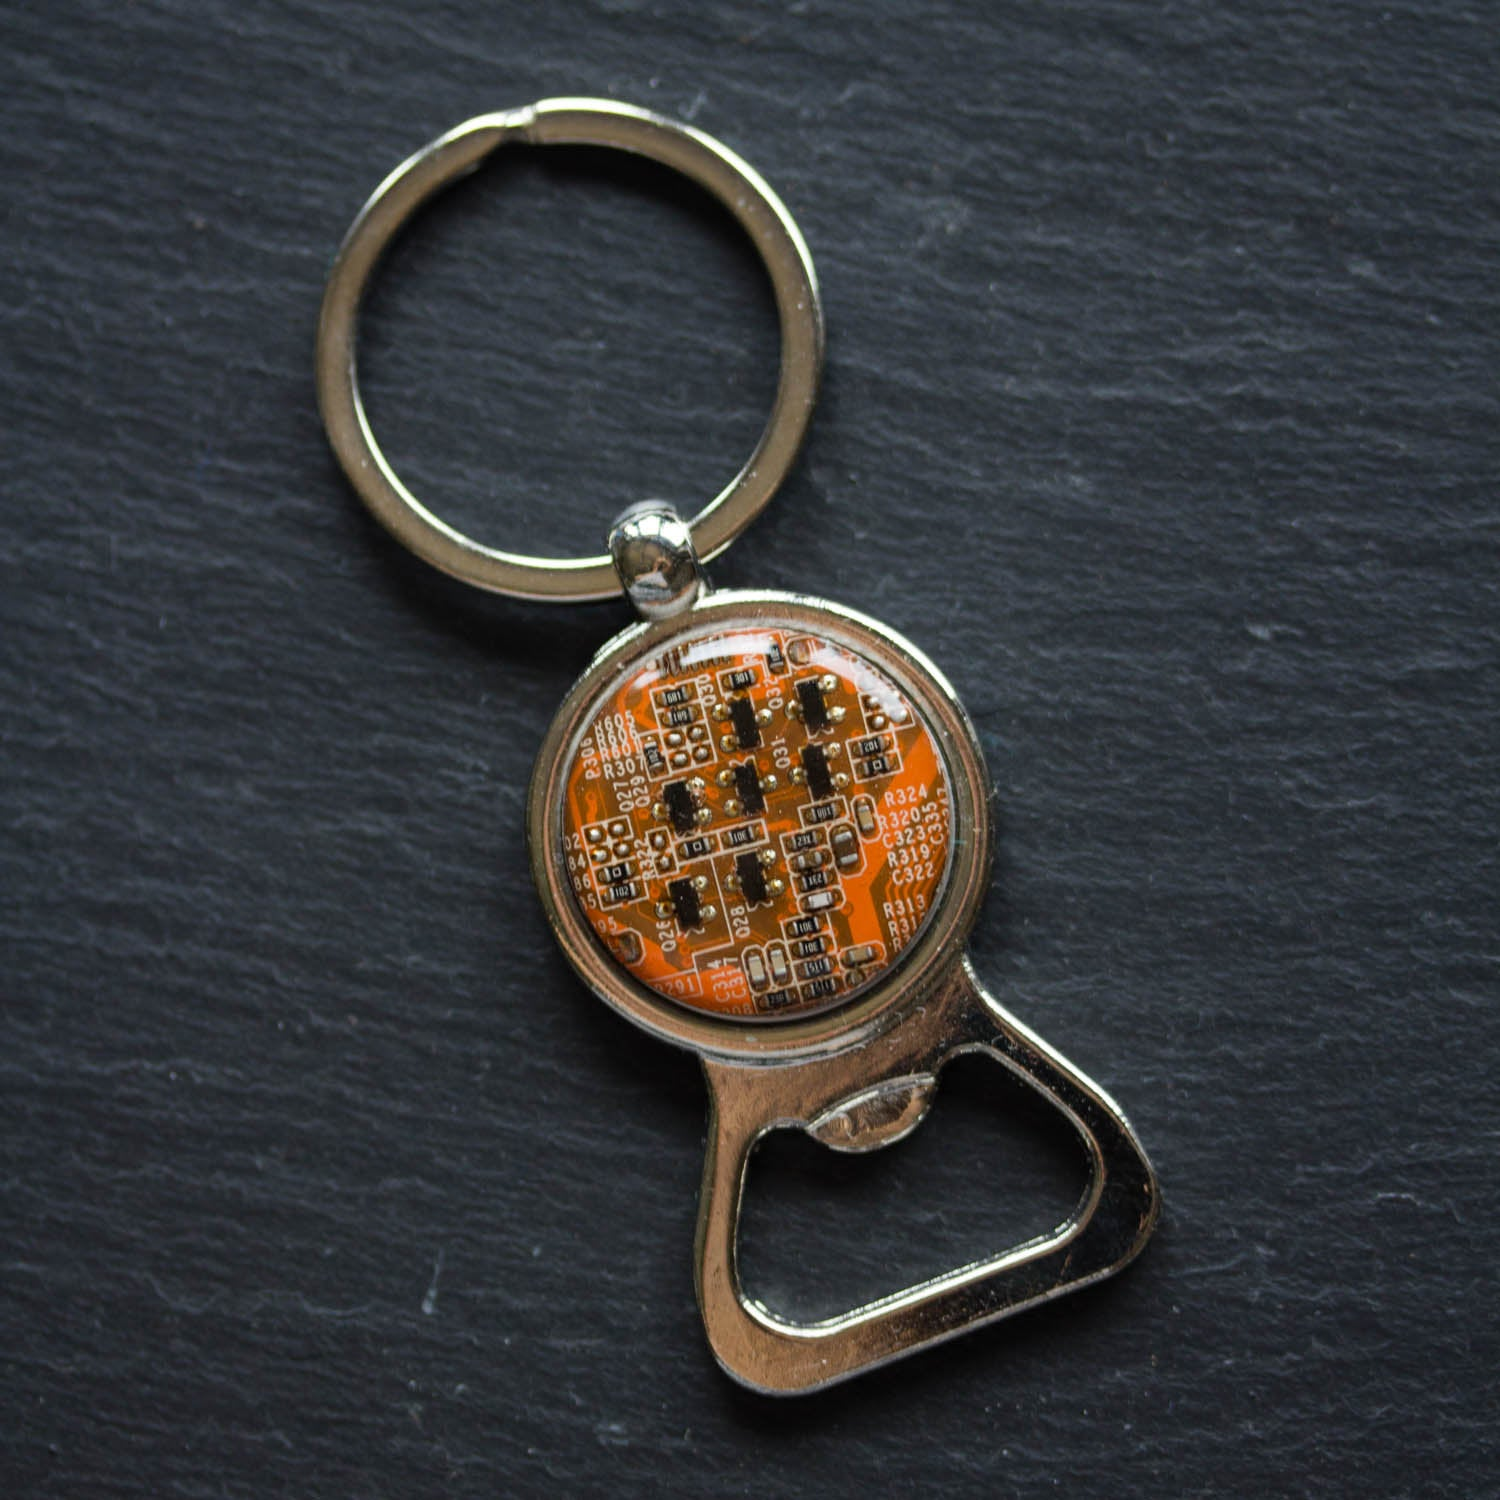 Bottle opener keychain with a circuit board